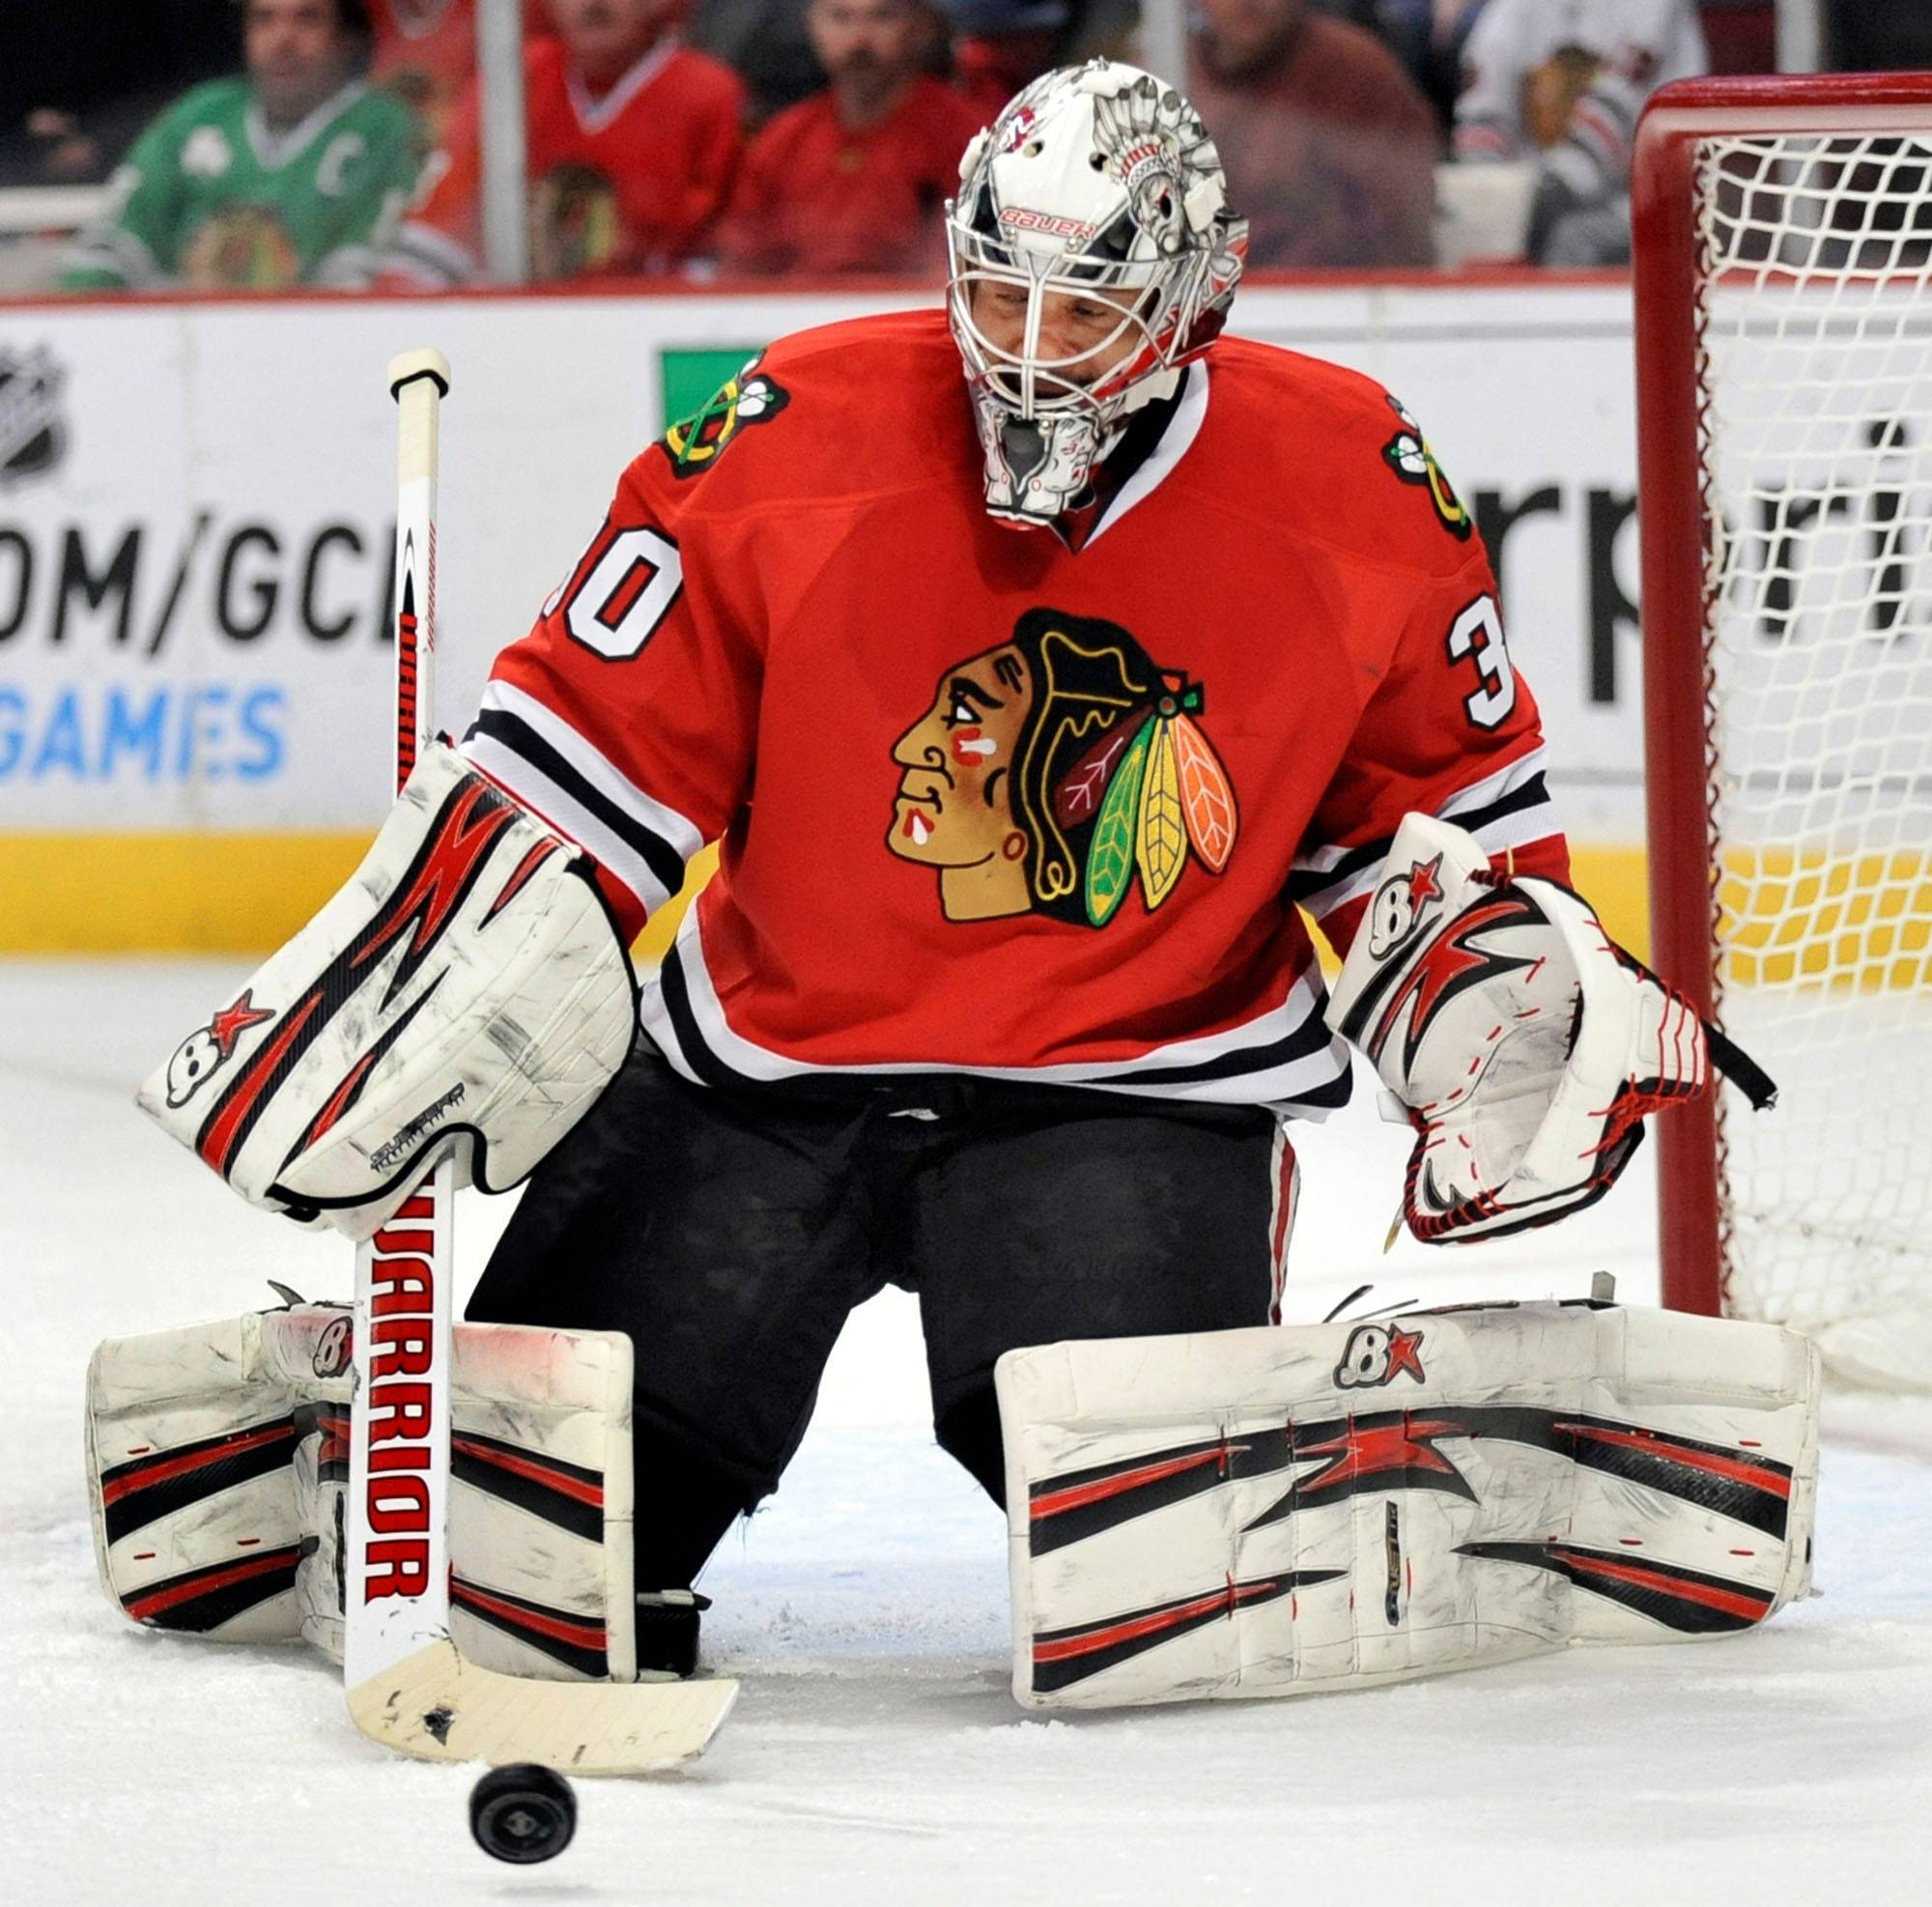 Chicago Blackhawks goalie Ray Emery makes a save against the Anaheim Ducks during the first period of an NHL hockey game in Chicago, Friday, March, 29, 2013. (AP Photo/Paul Beaty)